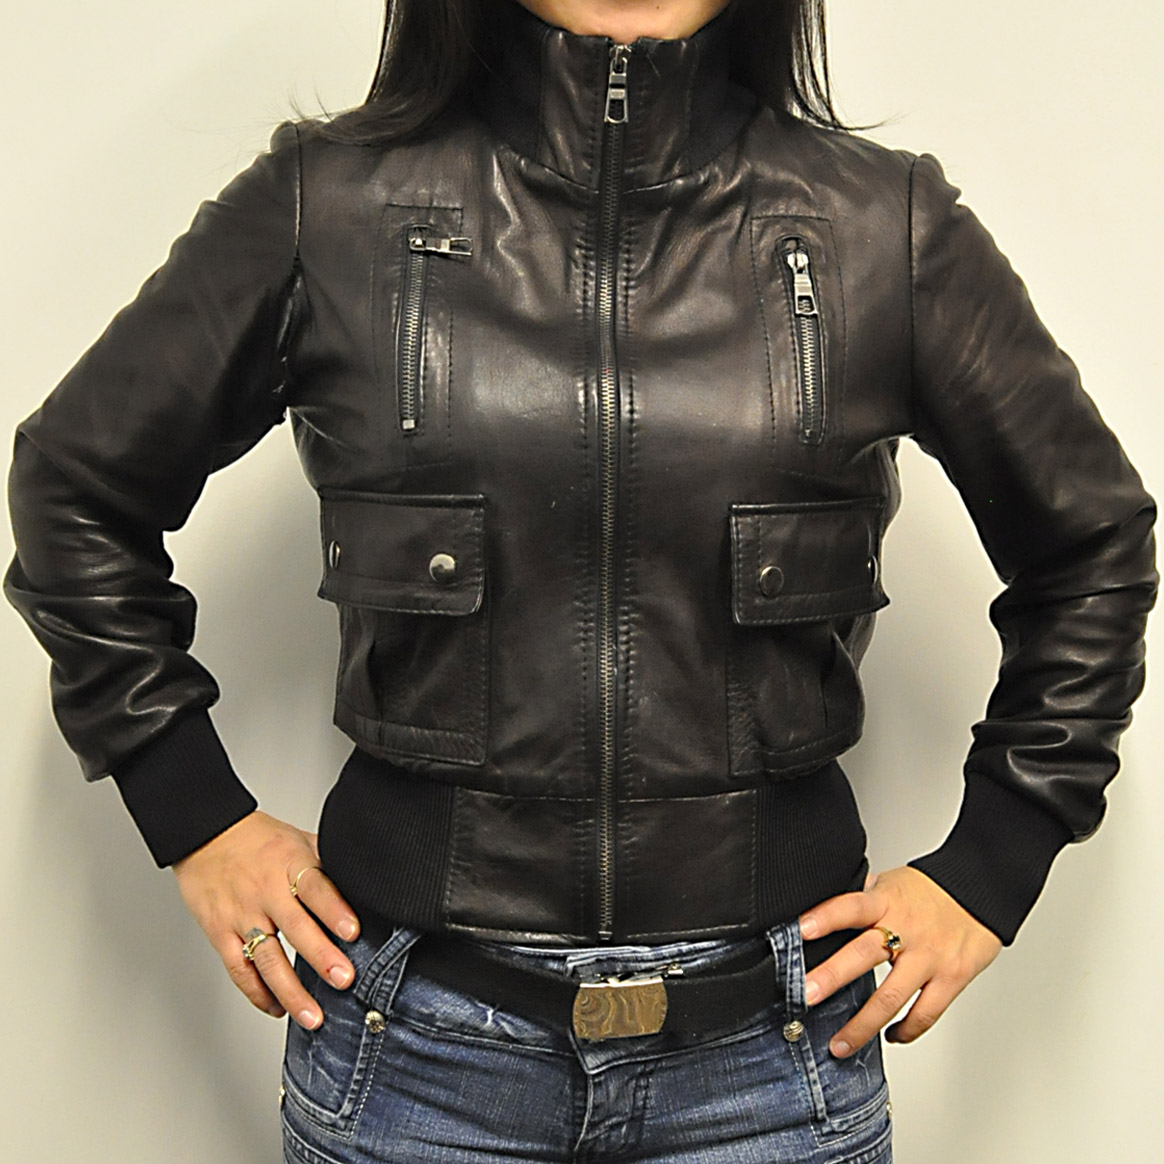 Get a Custom Leather Jacket at 6 Avenue Tailor